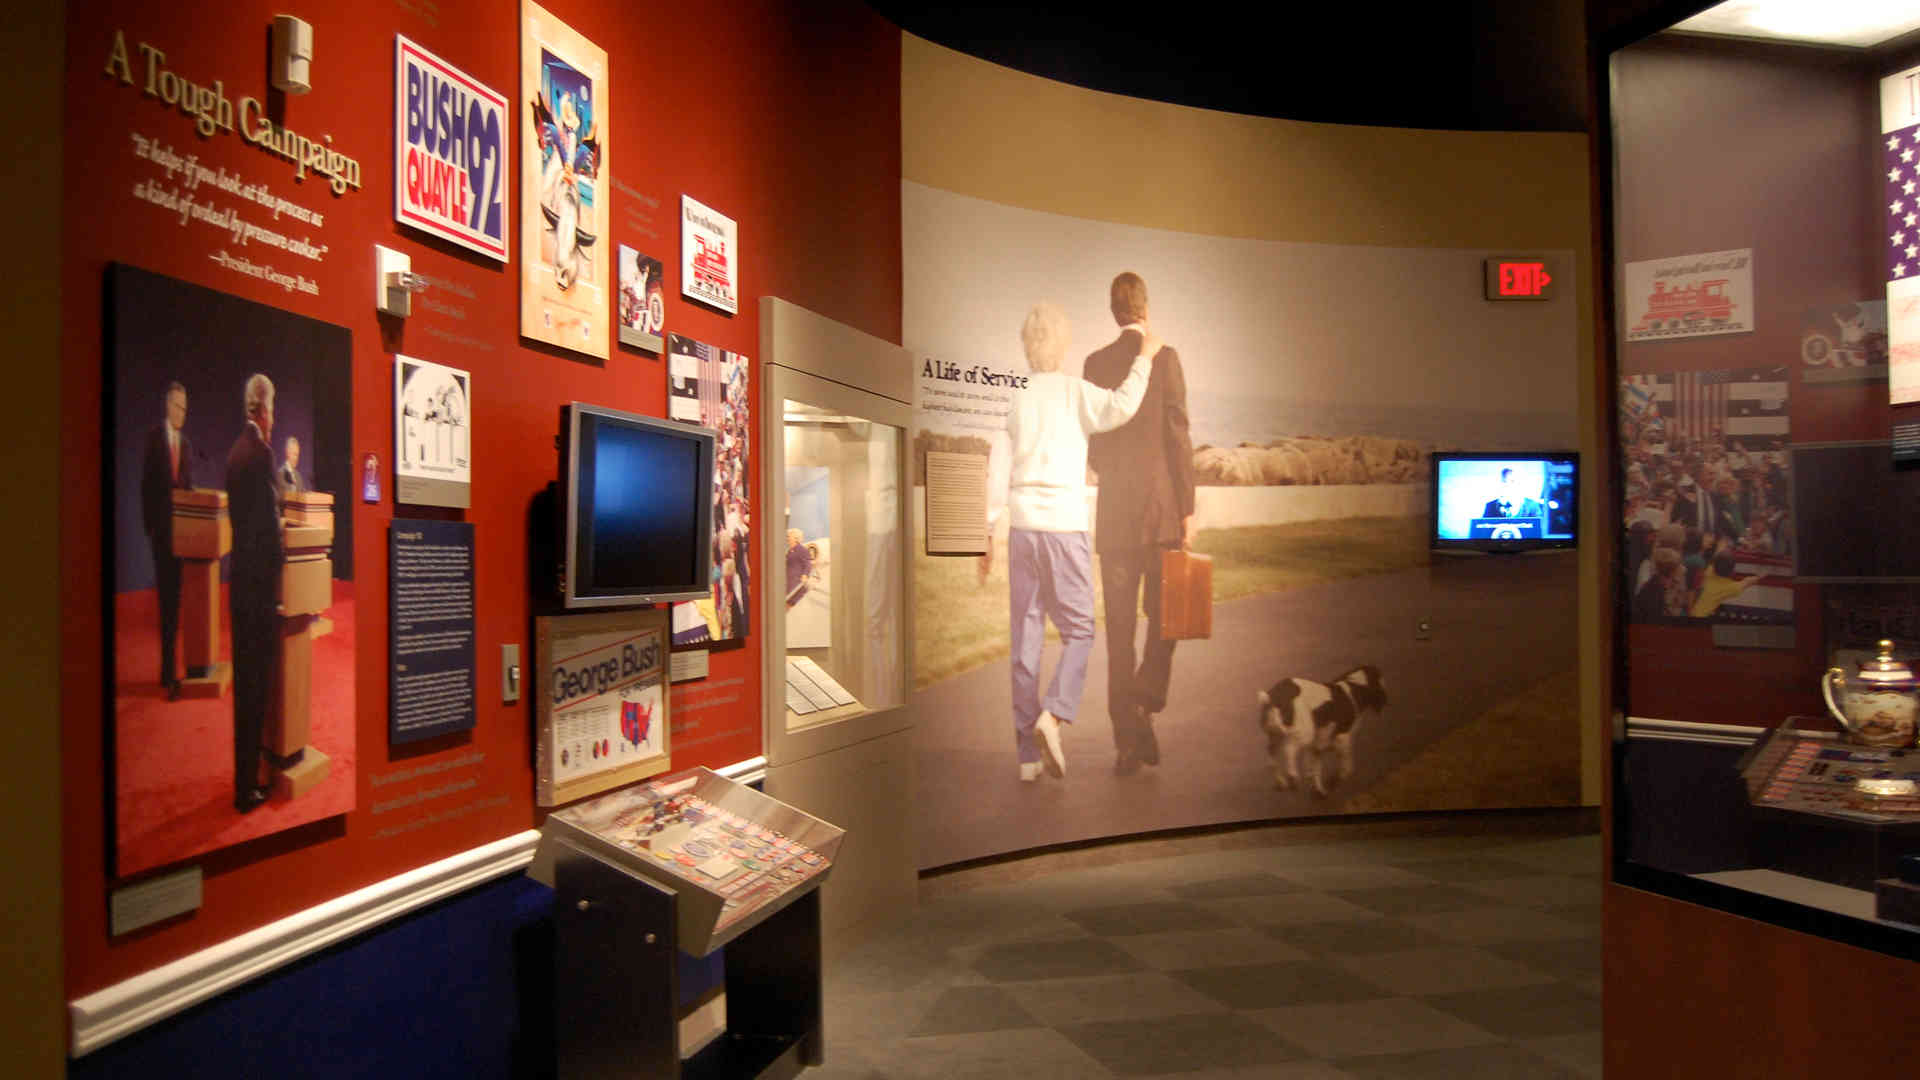 george bush library and museum exhibit graphics